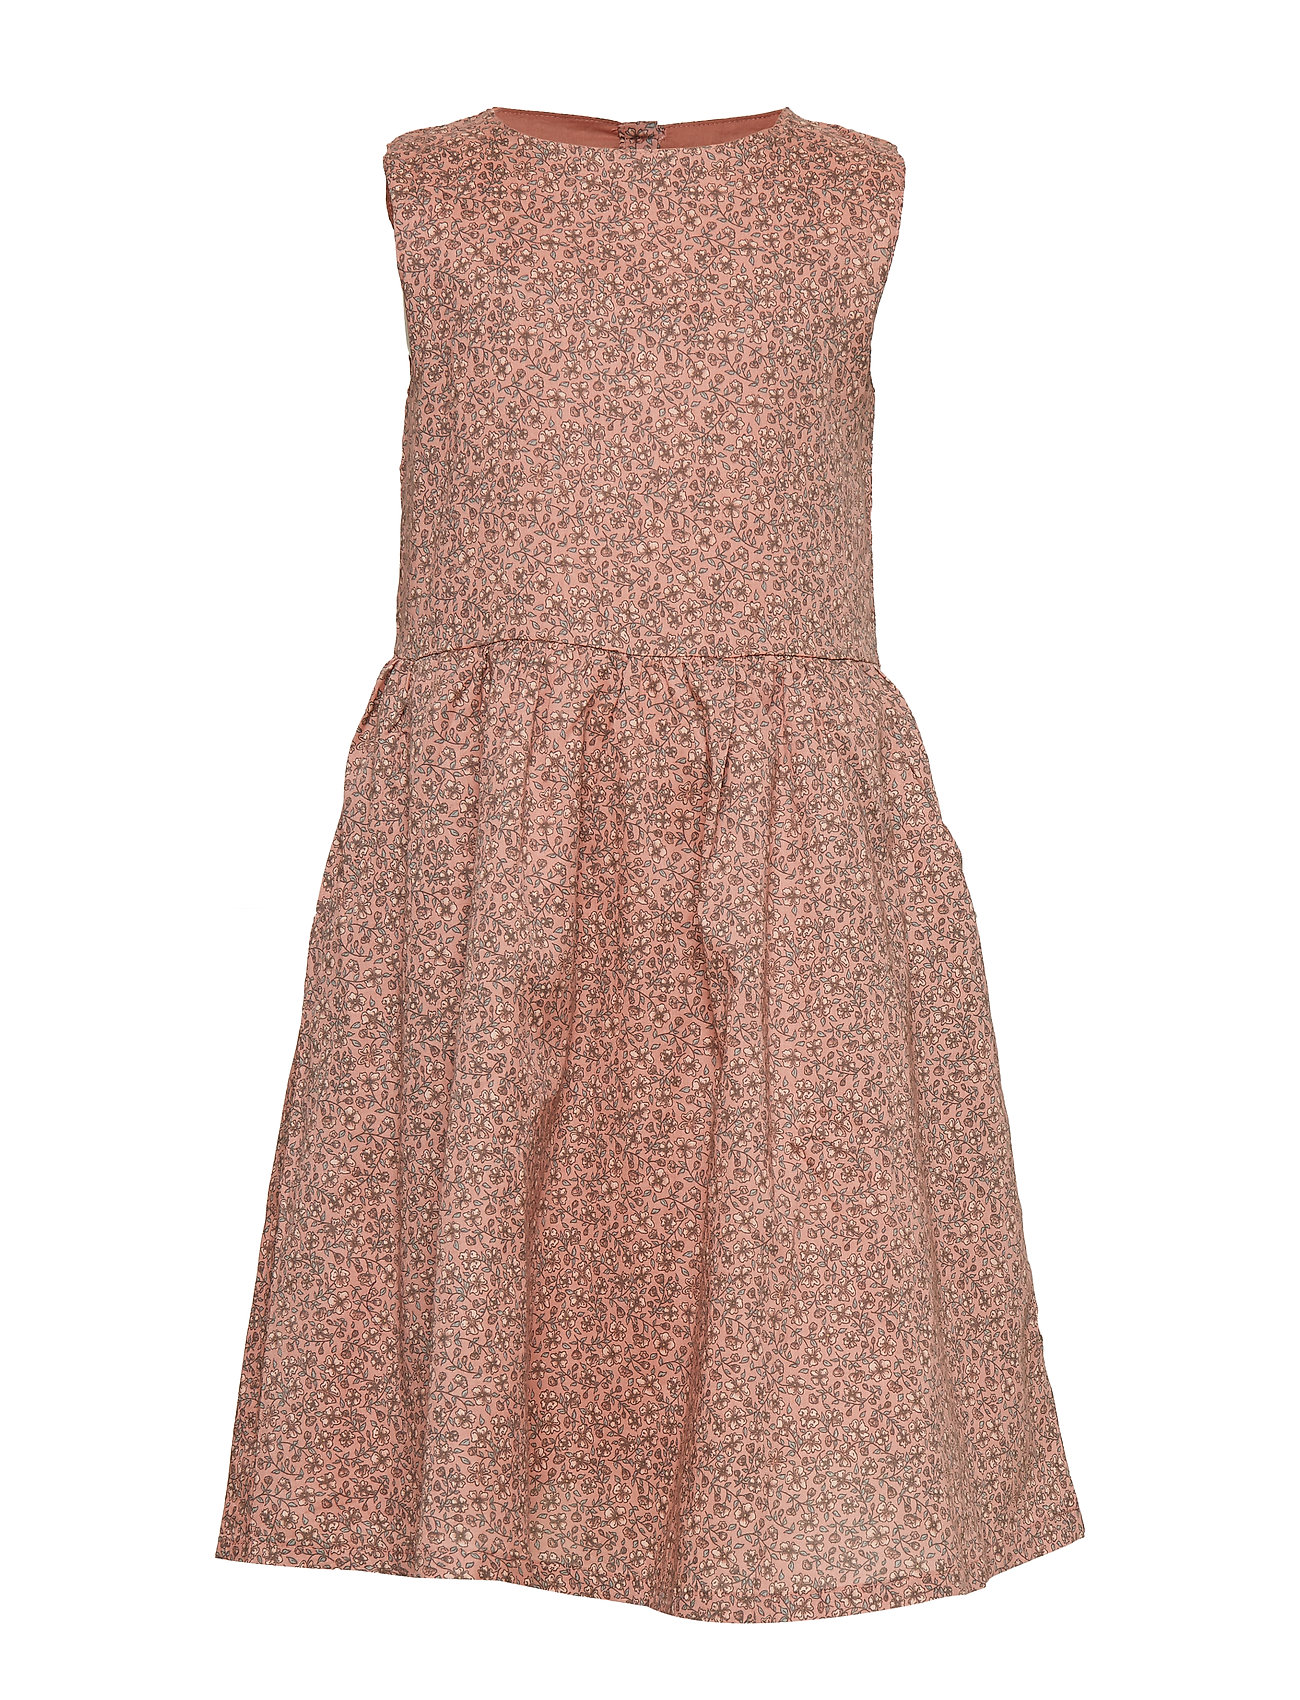 Wheat Dress Thelma - SOFT ROUGE